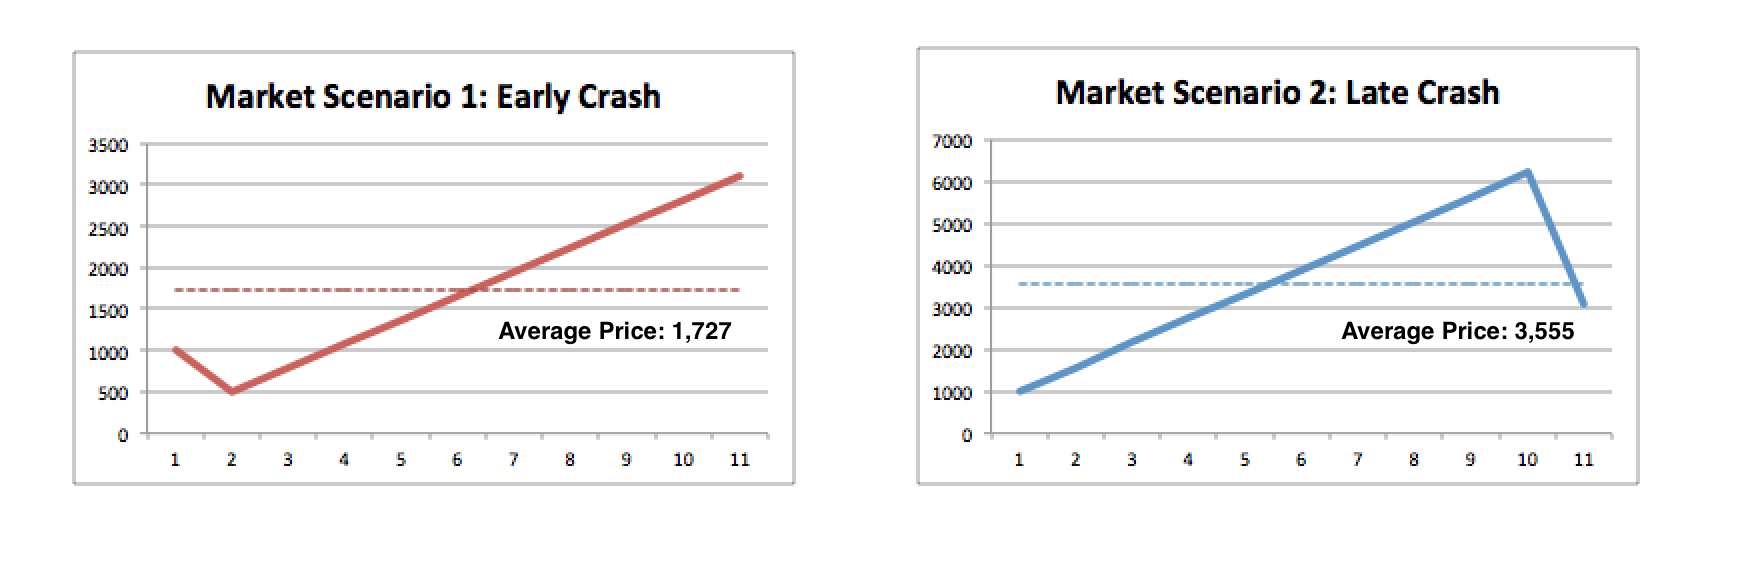 Market-Scenarios-with-Average-Price